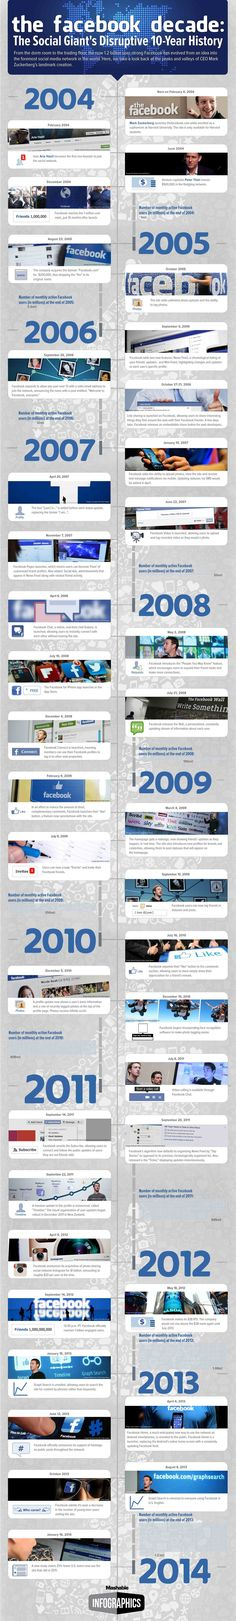 The Facebook Decade: 10 Disruptive Years of a Social Media Giant [INFOGRAPHIC]